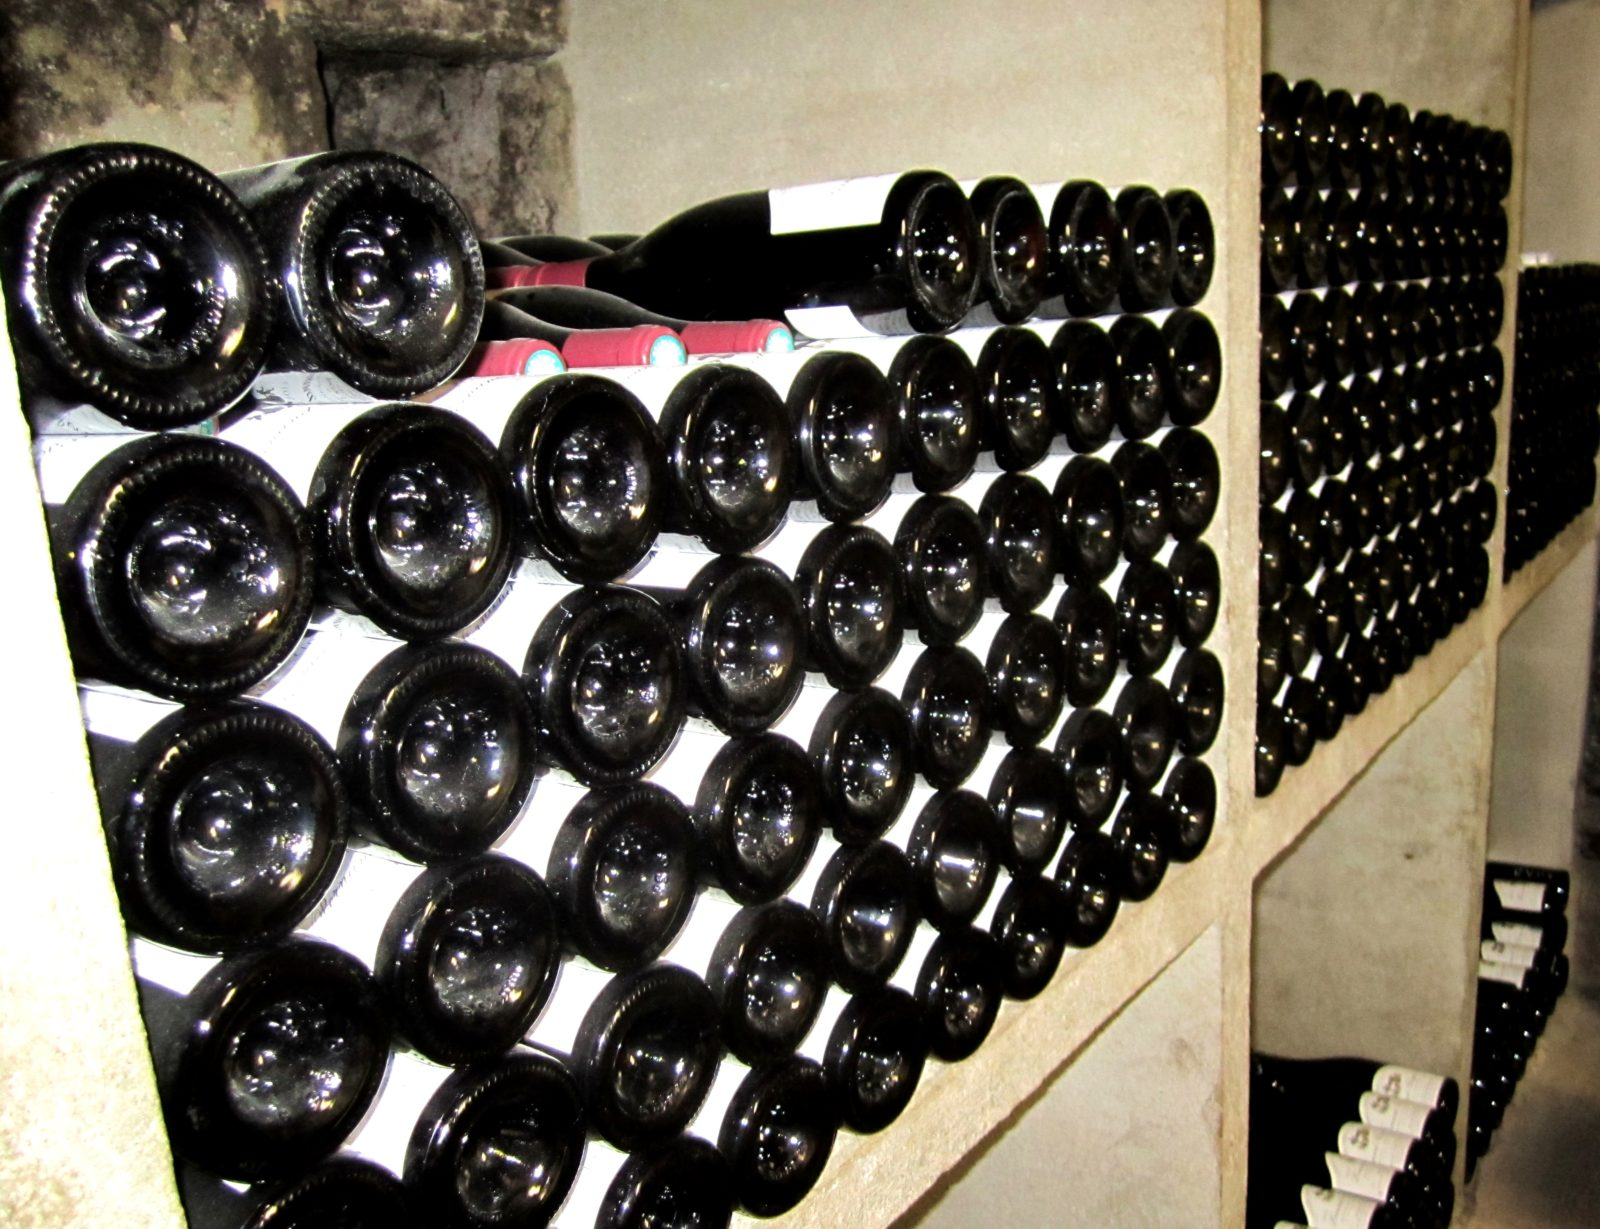 A cellar within walking distance